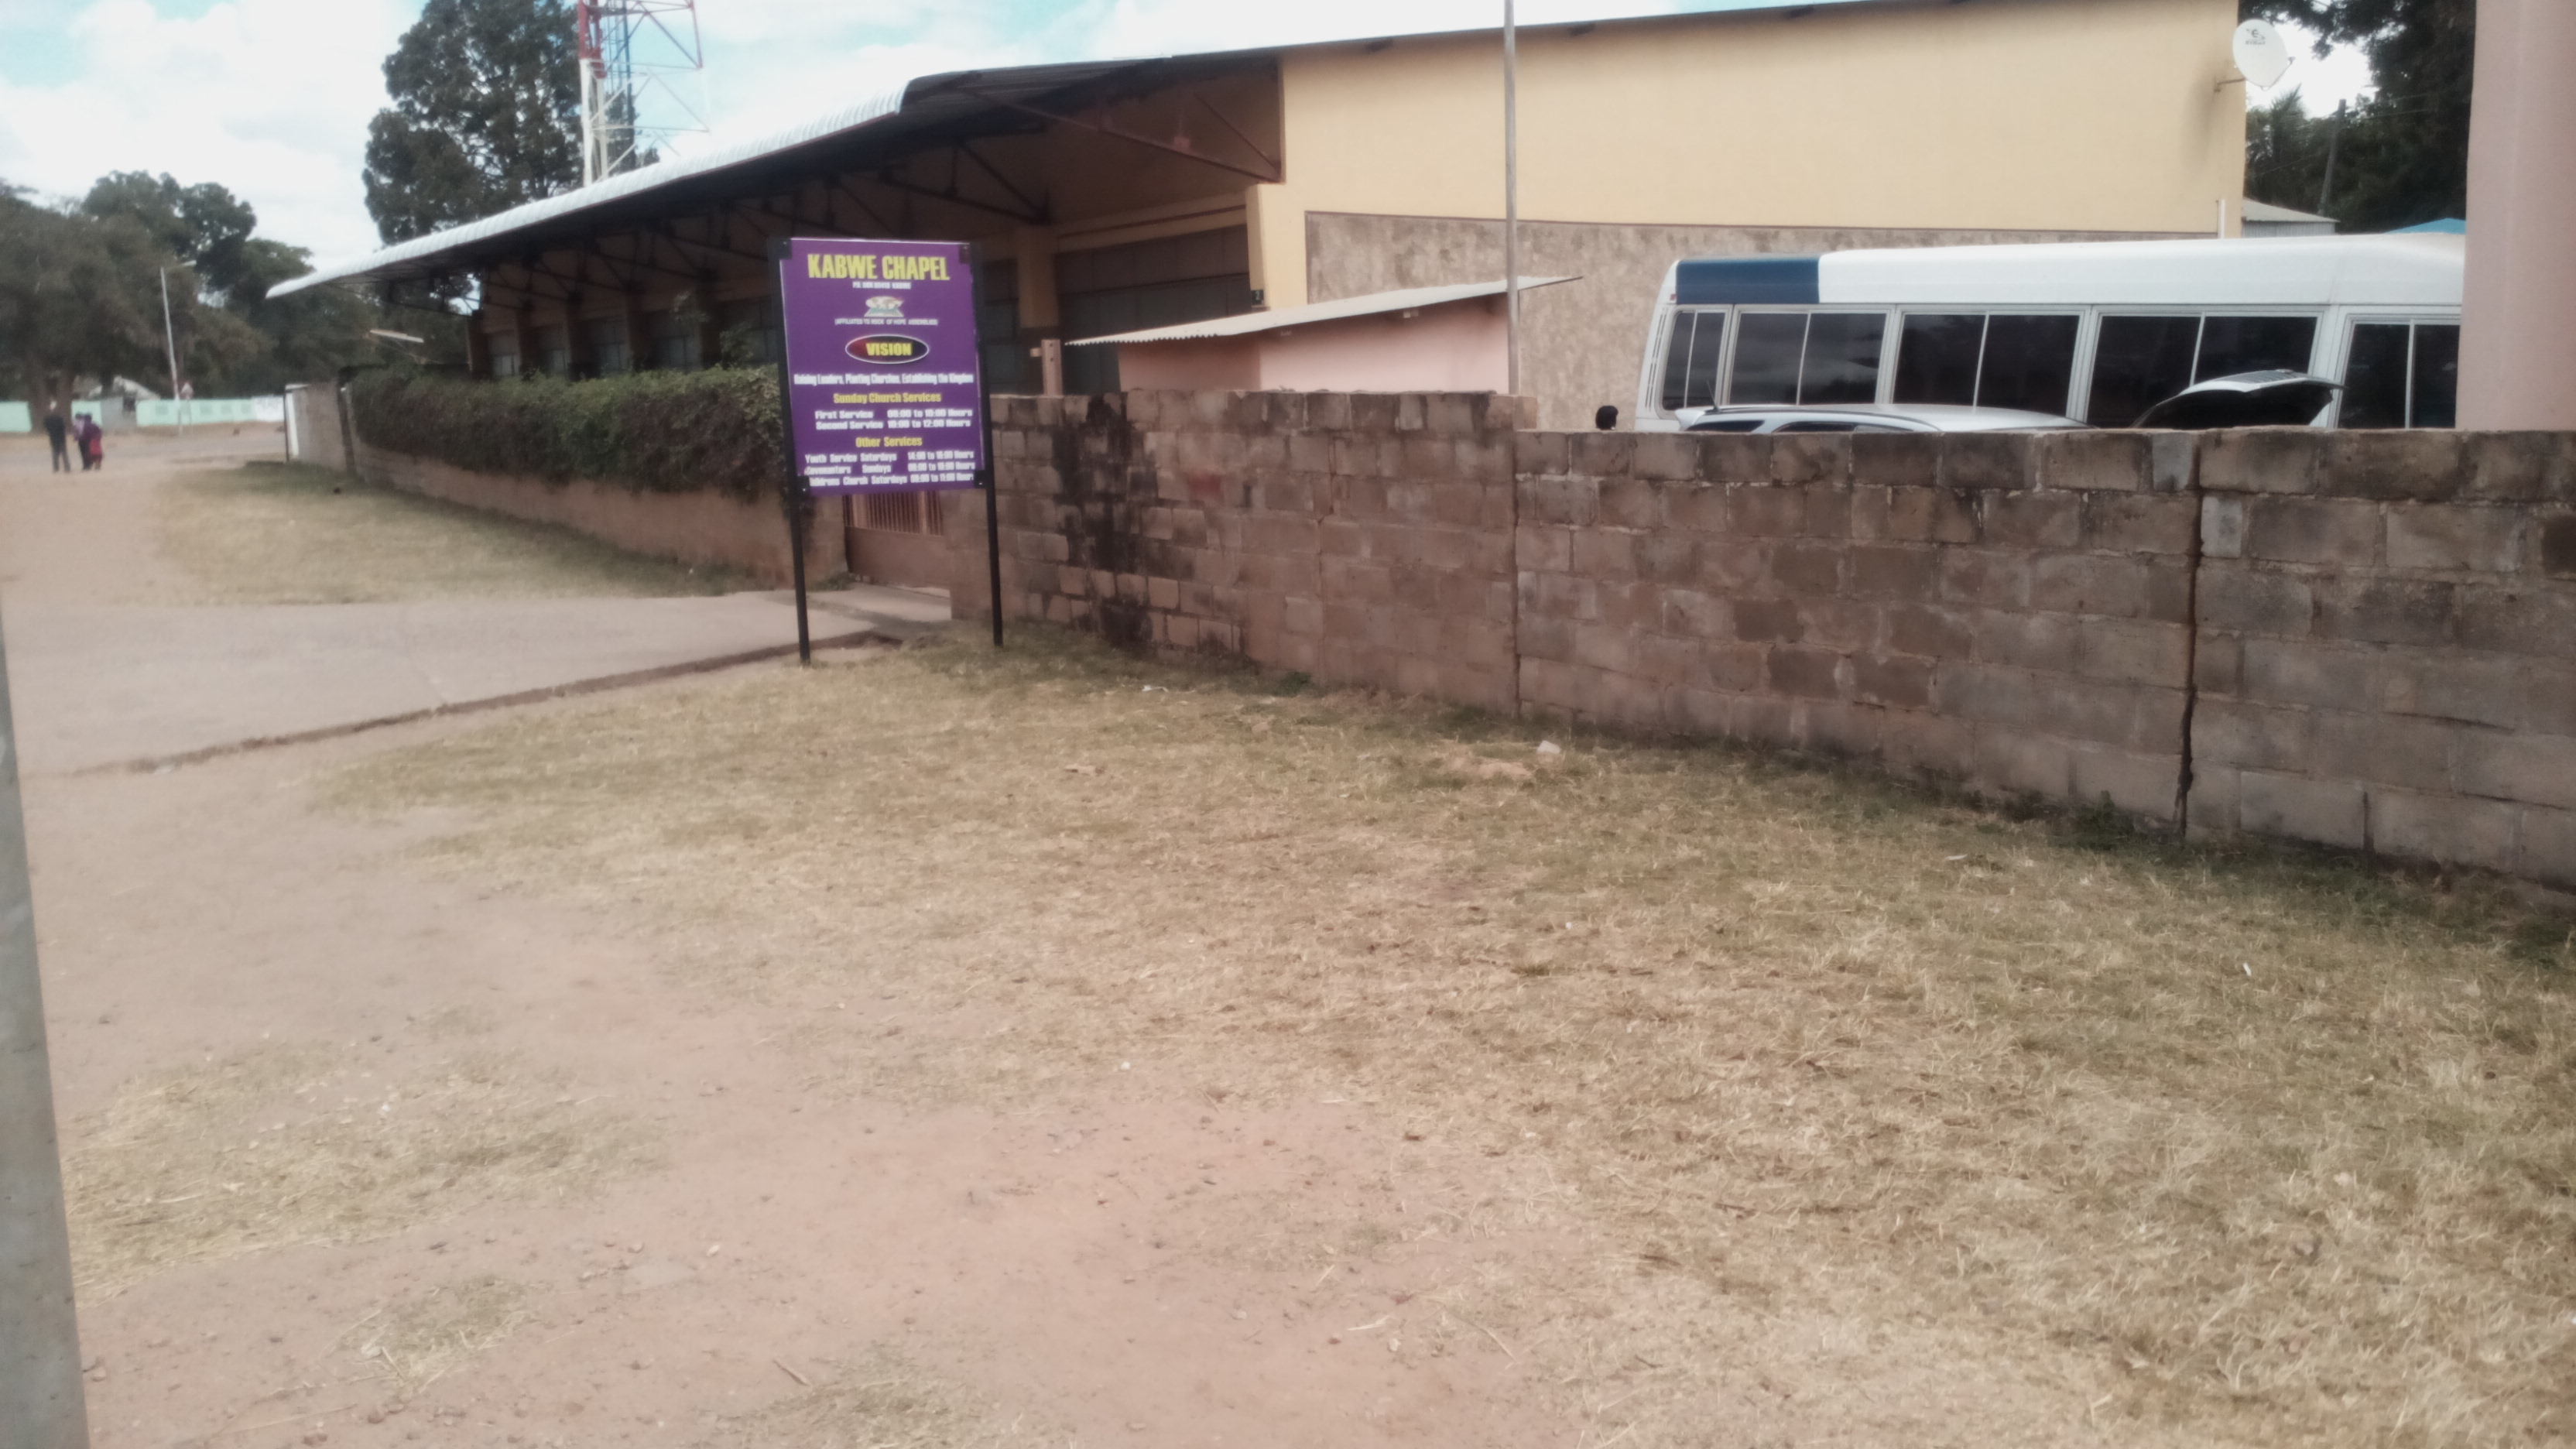 Coronation Park scandal; Kabwe chapel pastors mentioned, as TC is summoned